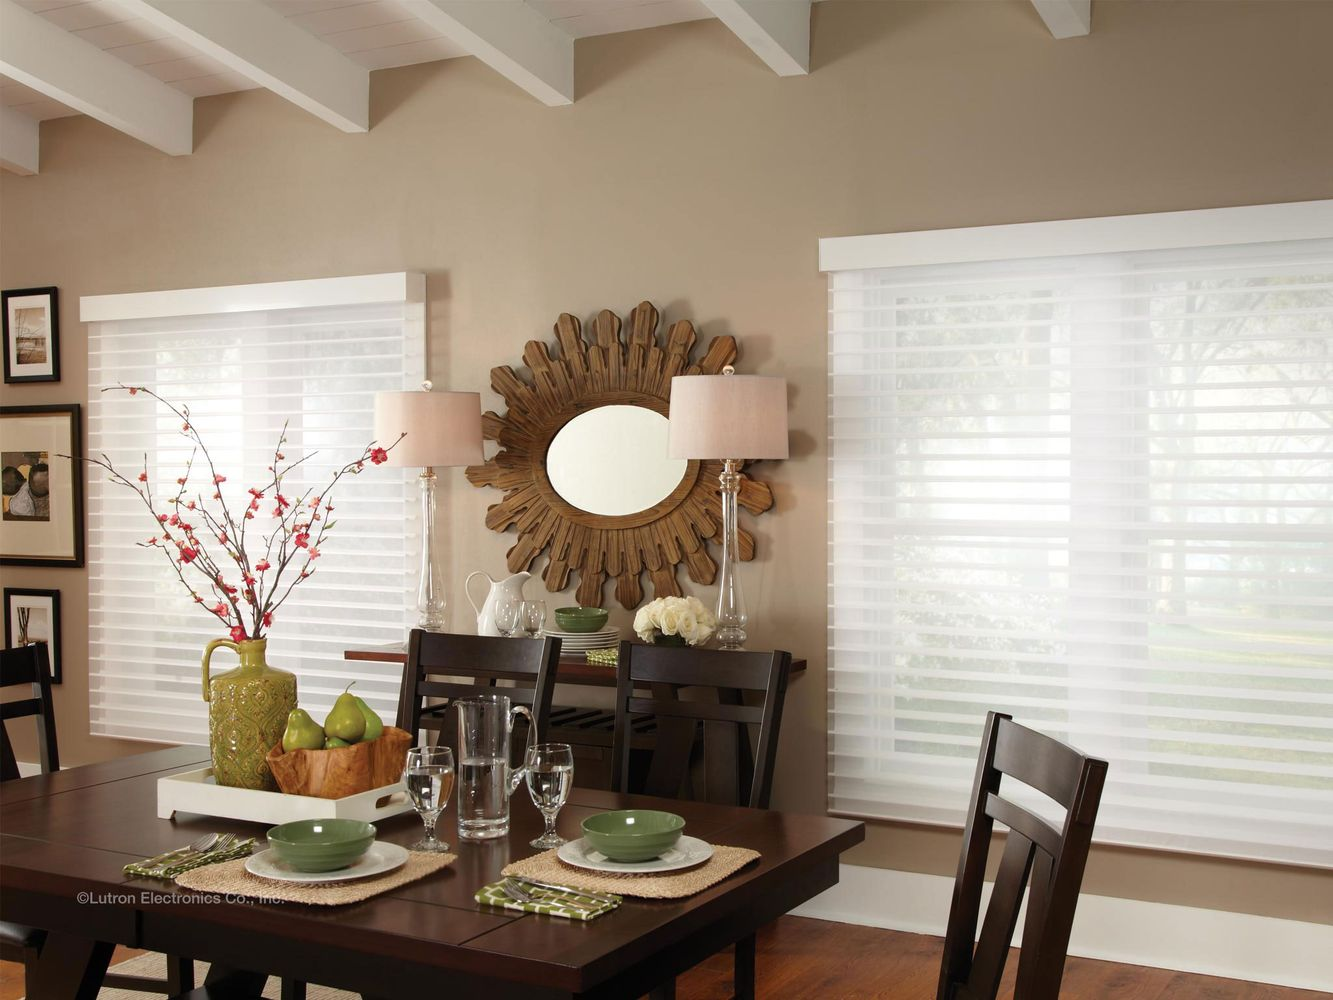 Solar Shades Cellular Blinds, Lutron shades, smart shades, Roller shades IN AUSTIN, LAGO VISTA, SPICEWOOD, BEE CAVE, LAKEWAY, DRIPPING SPRINGS, WIMBERLY, MARBLE FALLS, WEST LAKE HILLS, FREDERICKSBURG , HORSESHOE BAY, BELTON